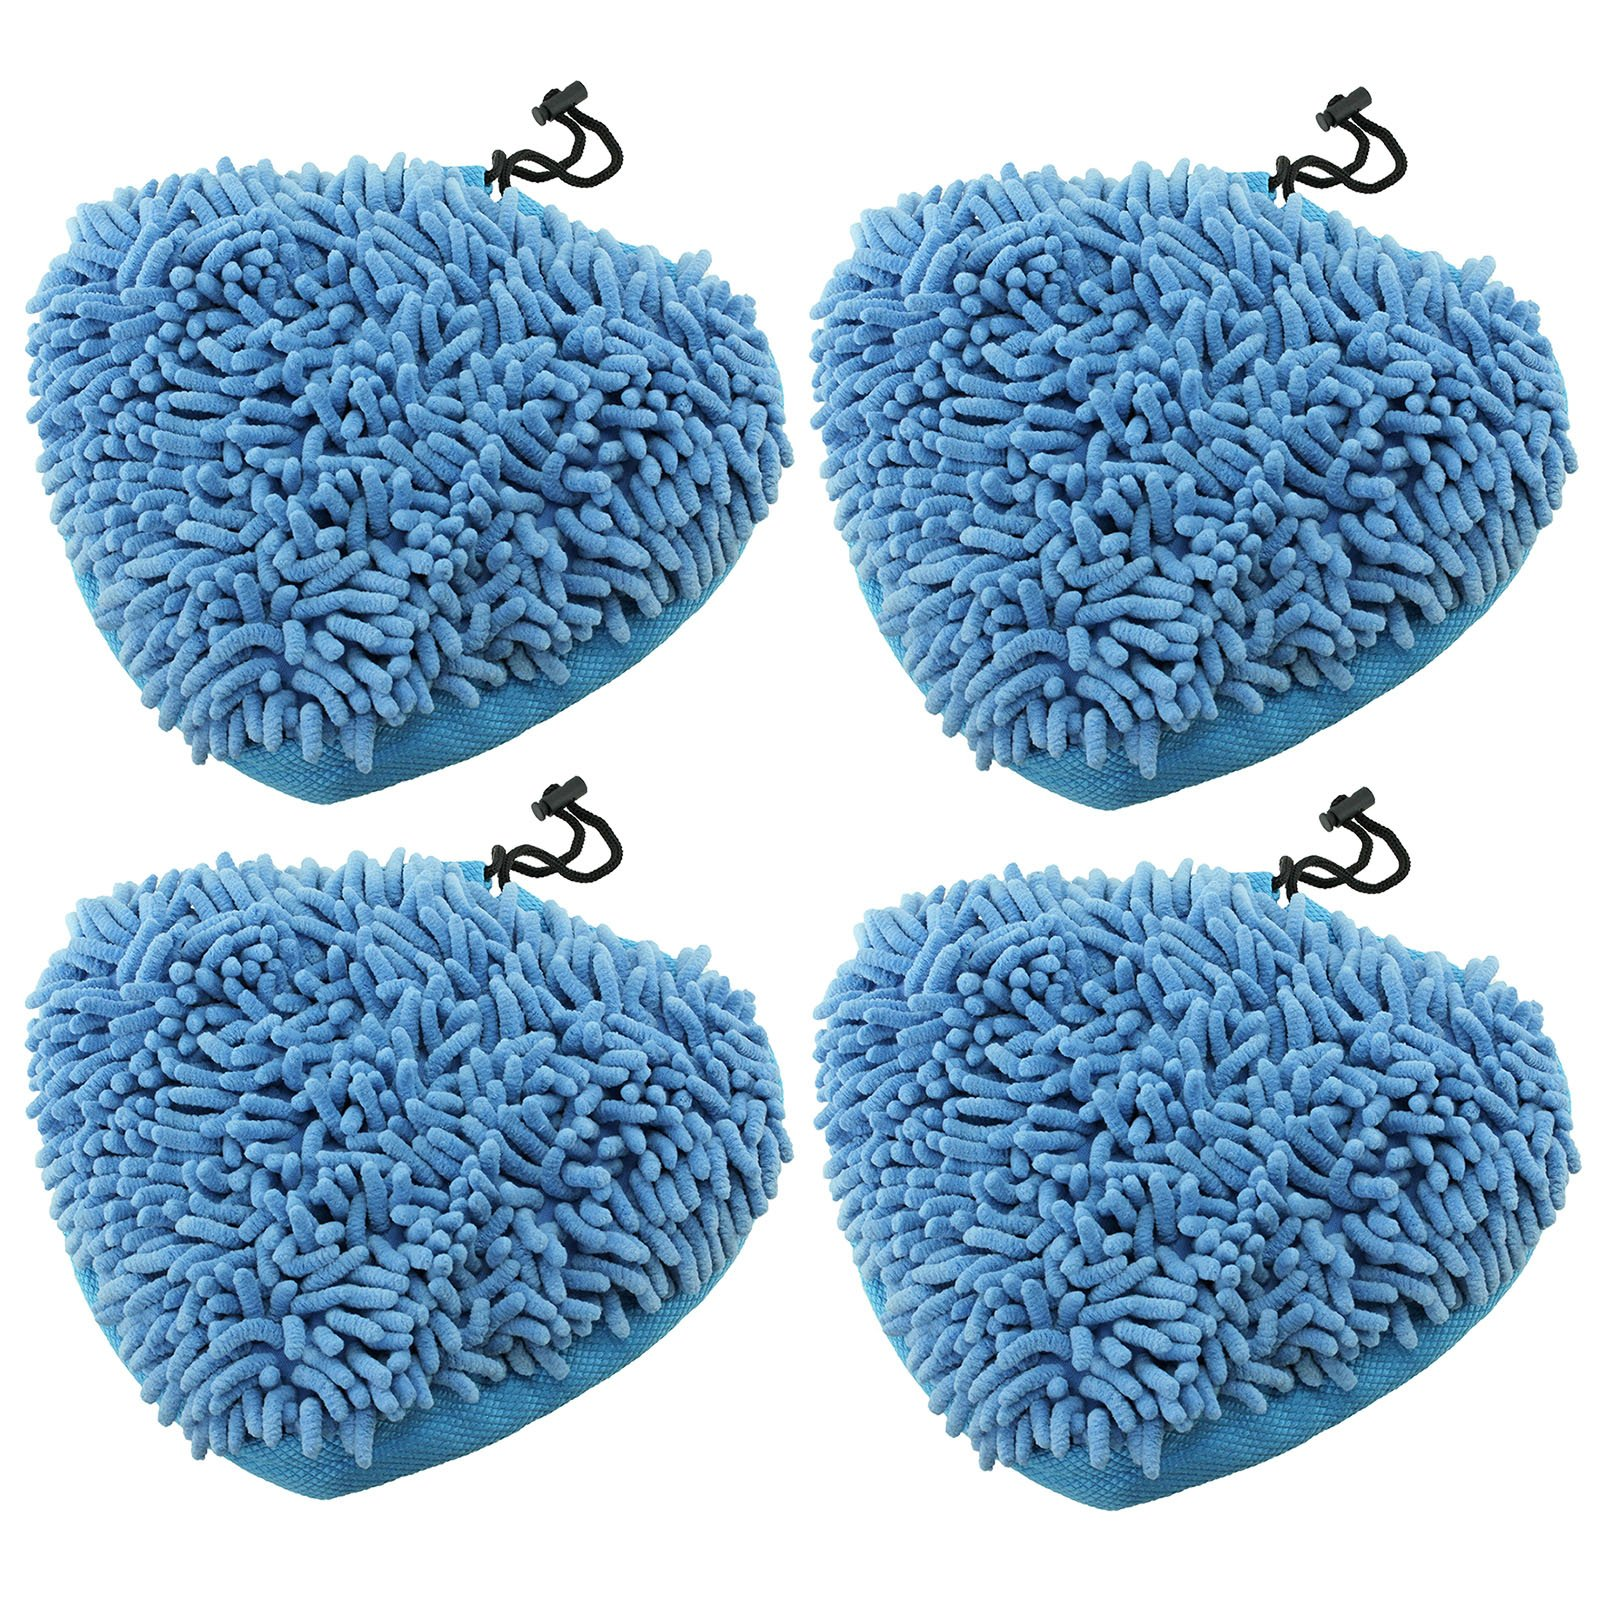 Spares2go Universal Coral Microfibre Cloth Cover Pads For Steam Cleaner Mops (Pack Of 4)